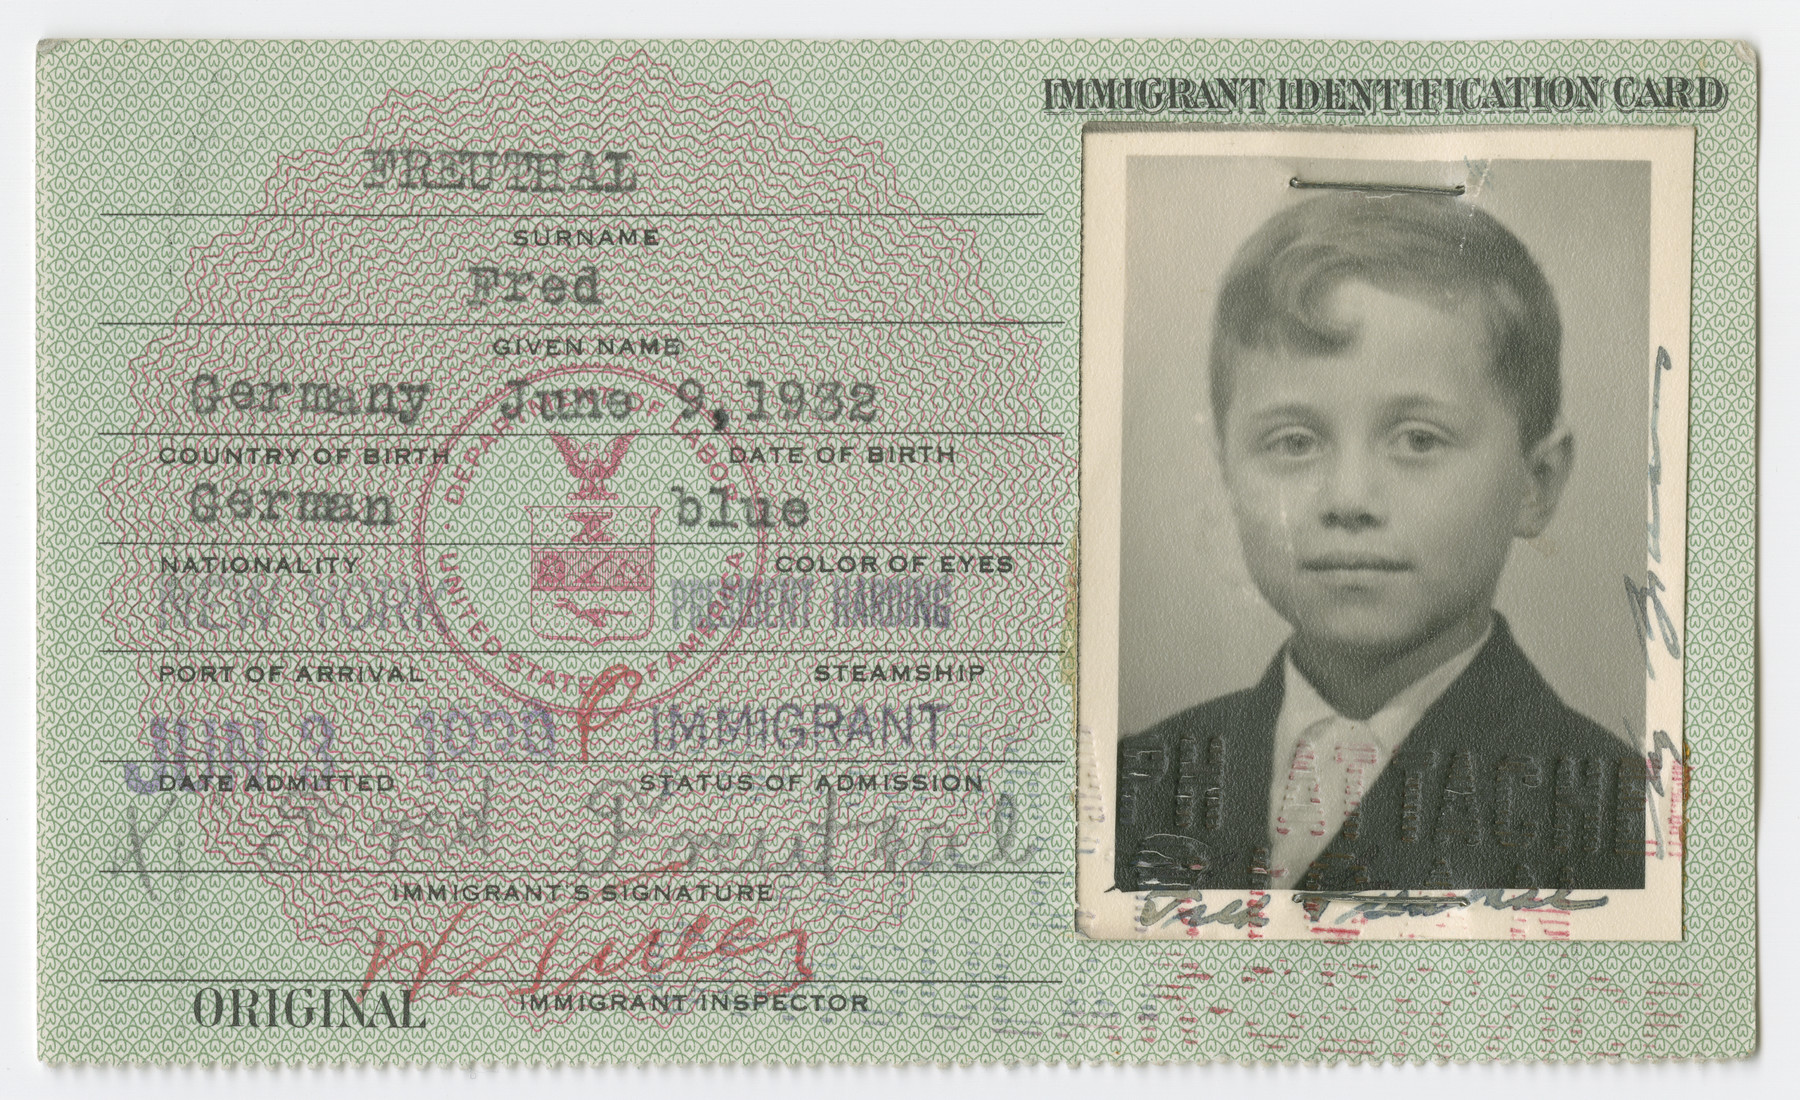 United States Immigrant Identification Card issued to Fred Freuthal  It states he was born in Germany though he probably was born in Vienna.